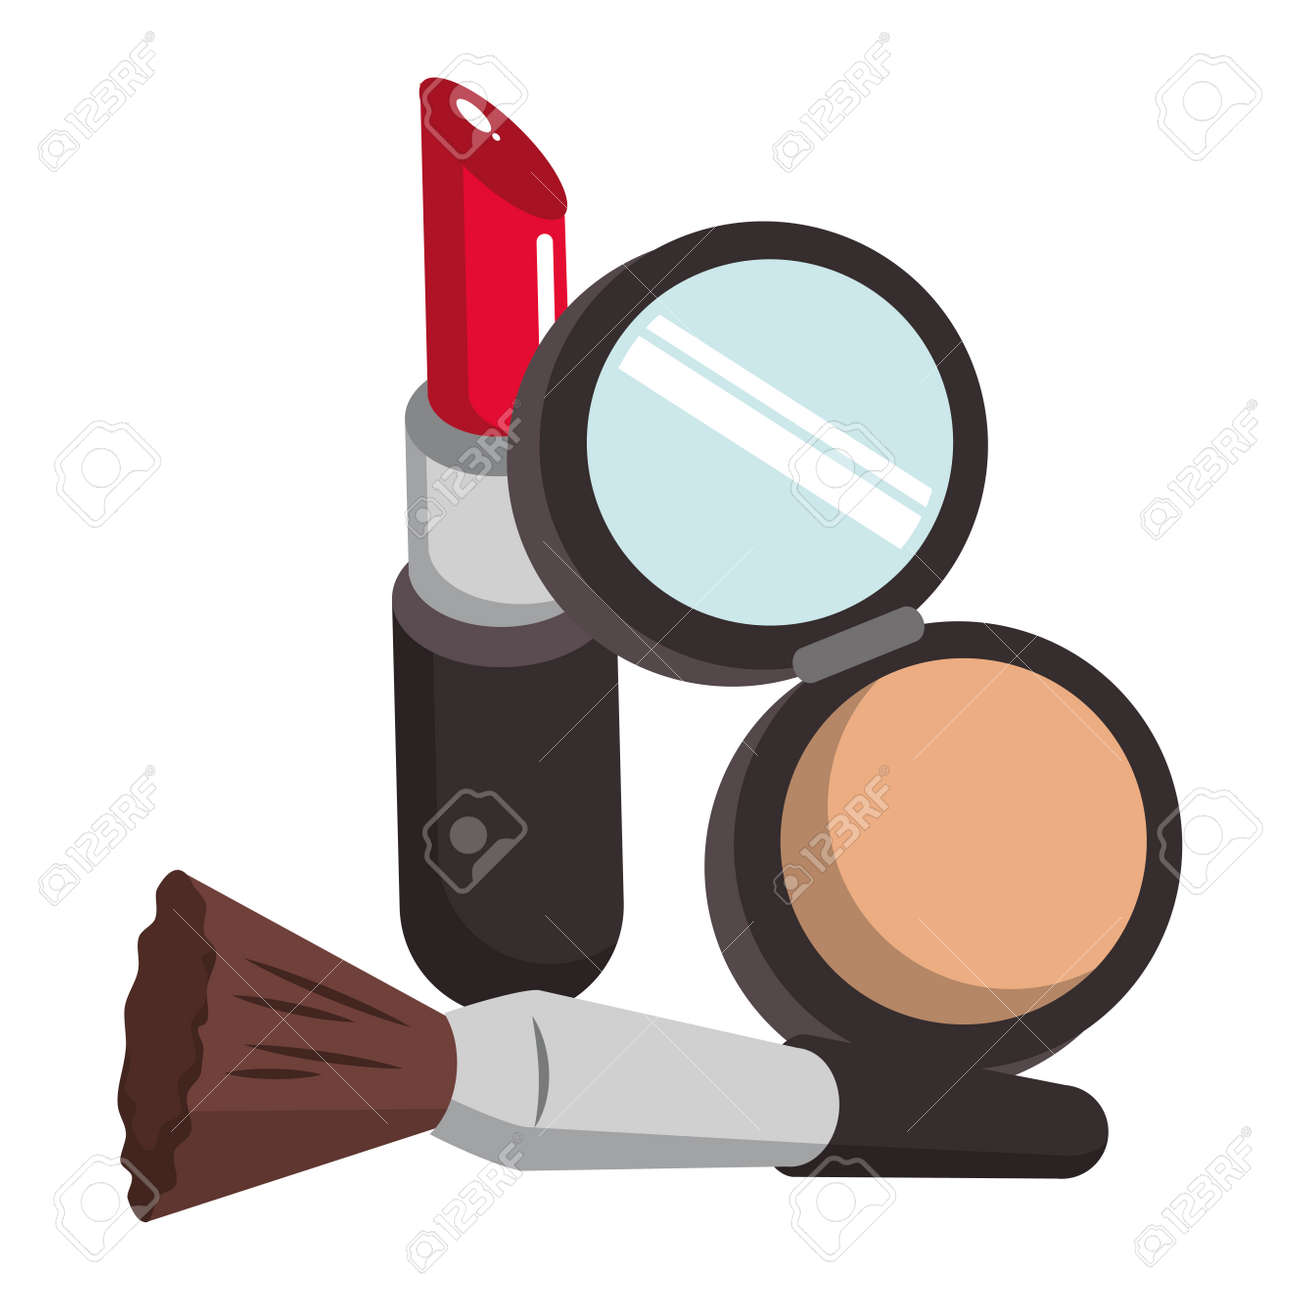 Make up and women fashion beauty powder and brush with lipstick vector illustration graphic design - 126123889